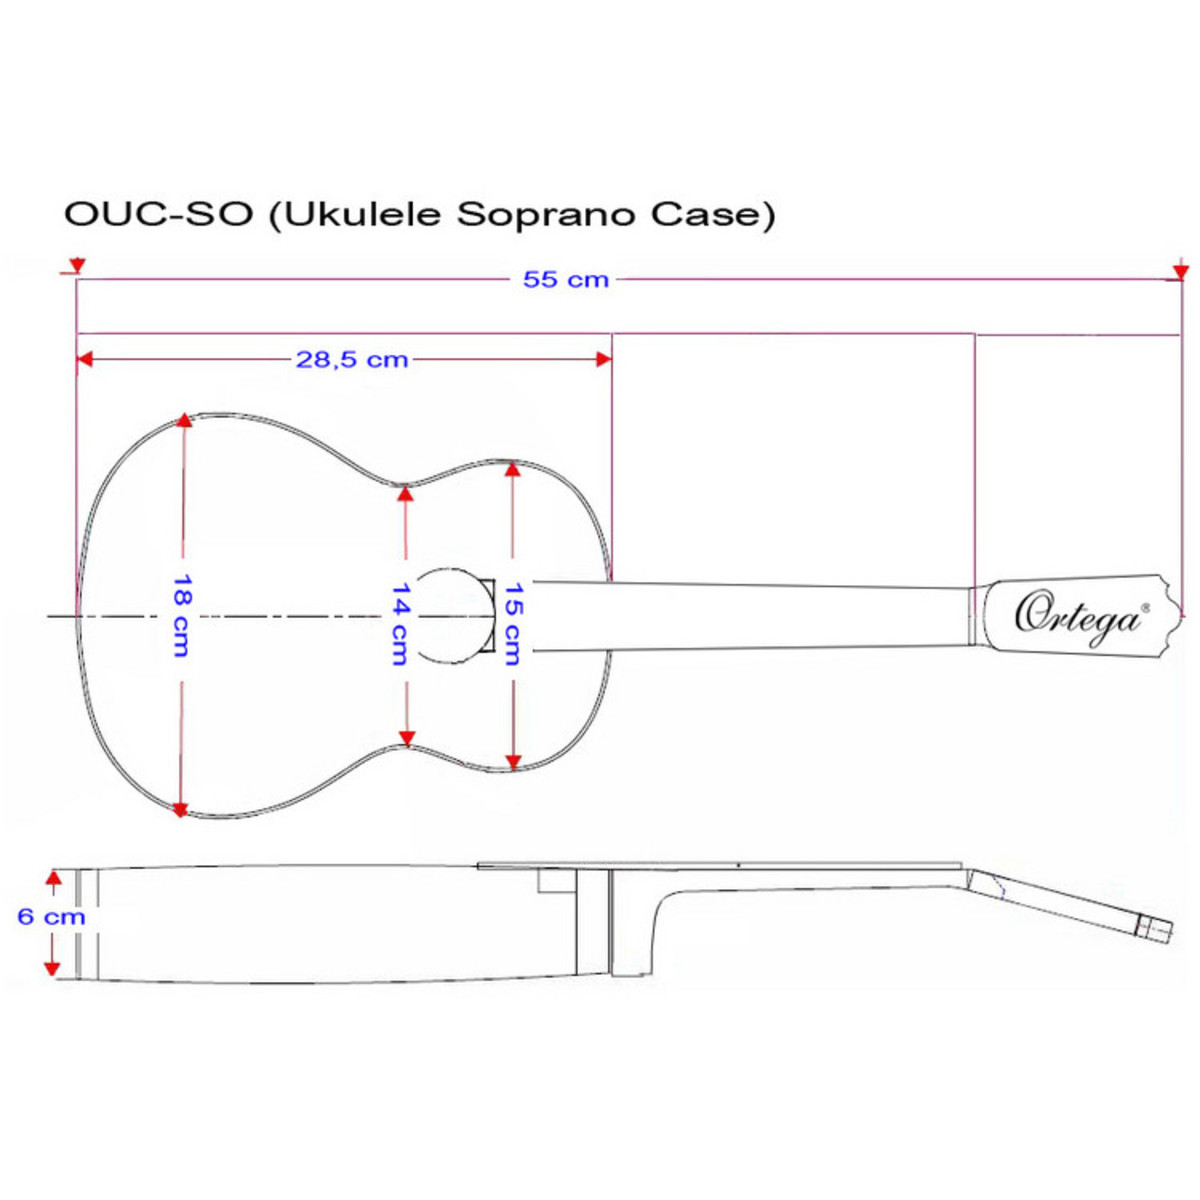 Ortega ouc so professional ukulele case soprano size at ortega ouc so professional ukulele case soprano size pooptronica